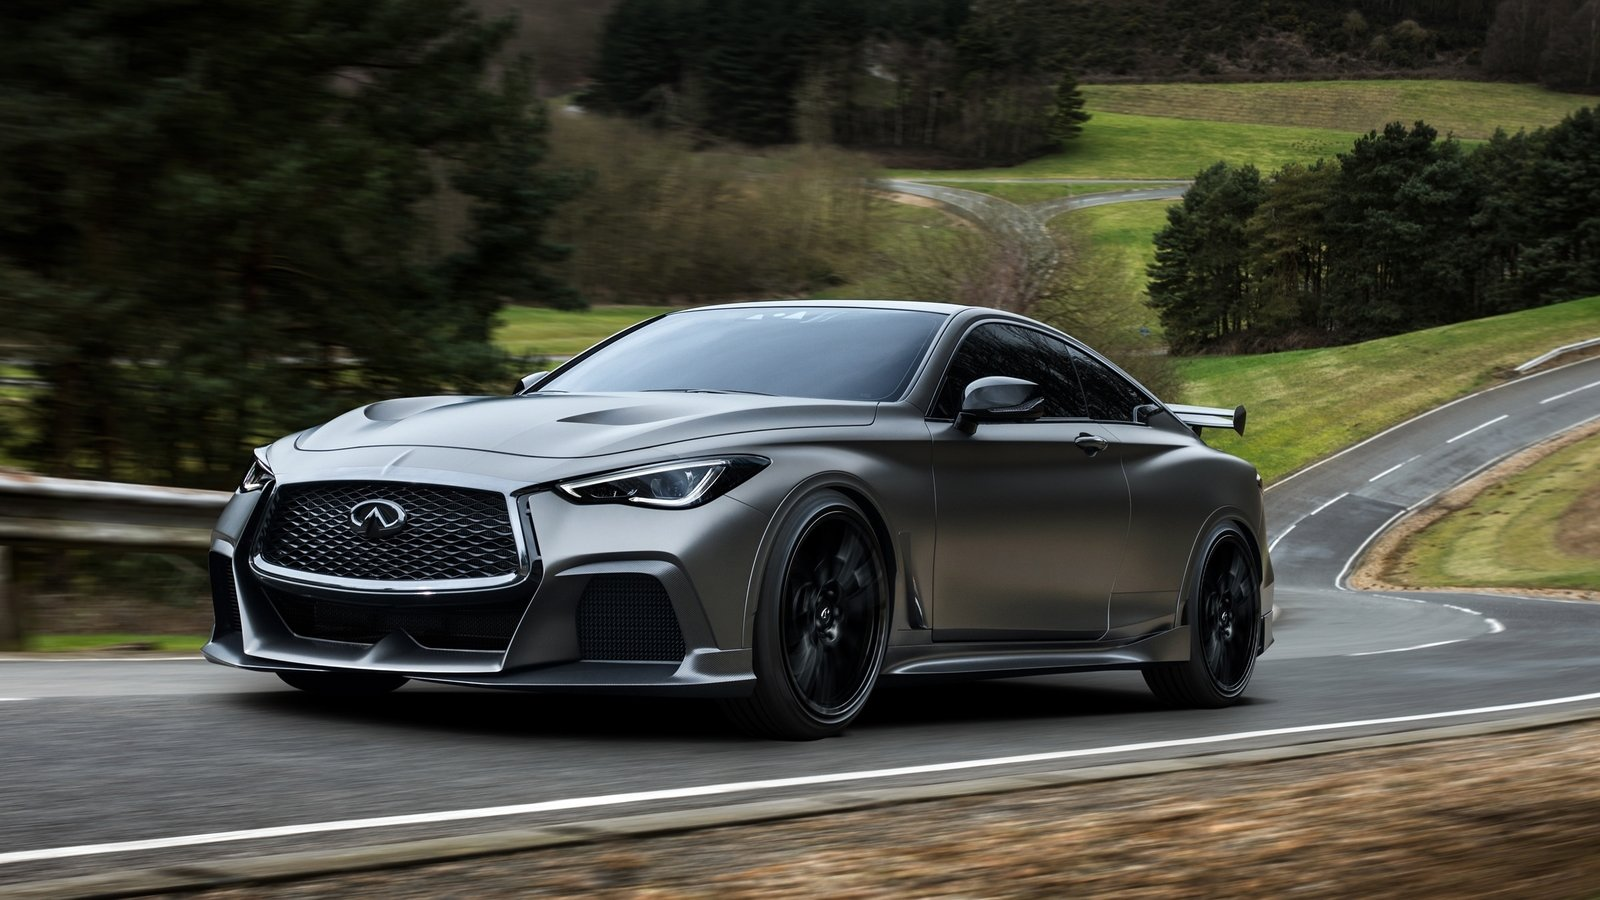 P And W BMW >> Is The Infiniti Q60 Project Black S Headed For A ...